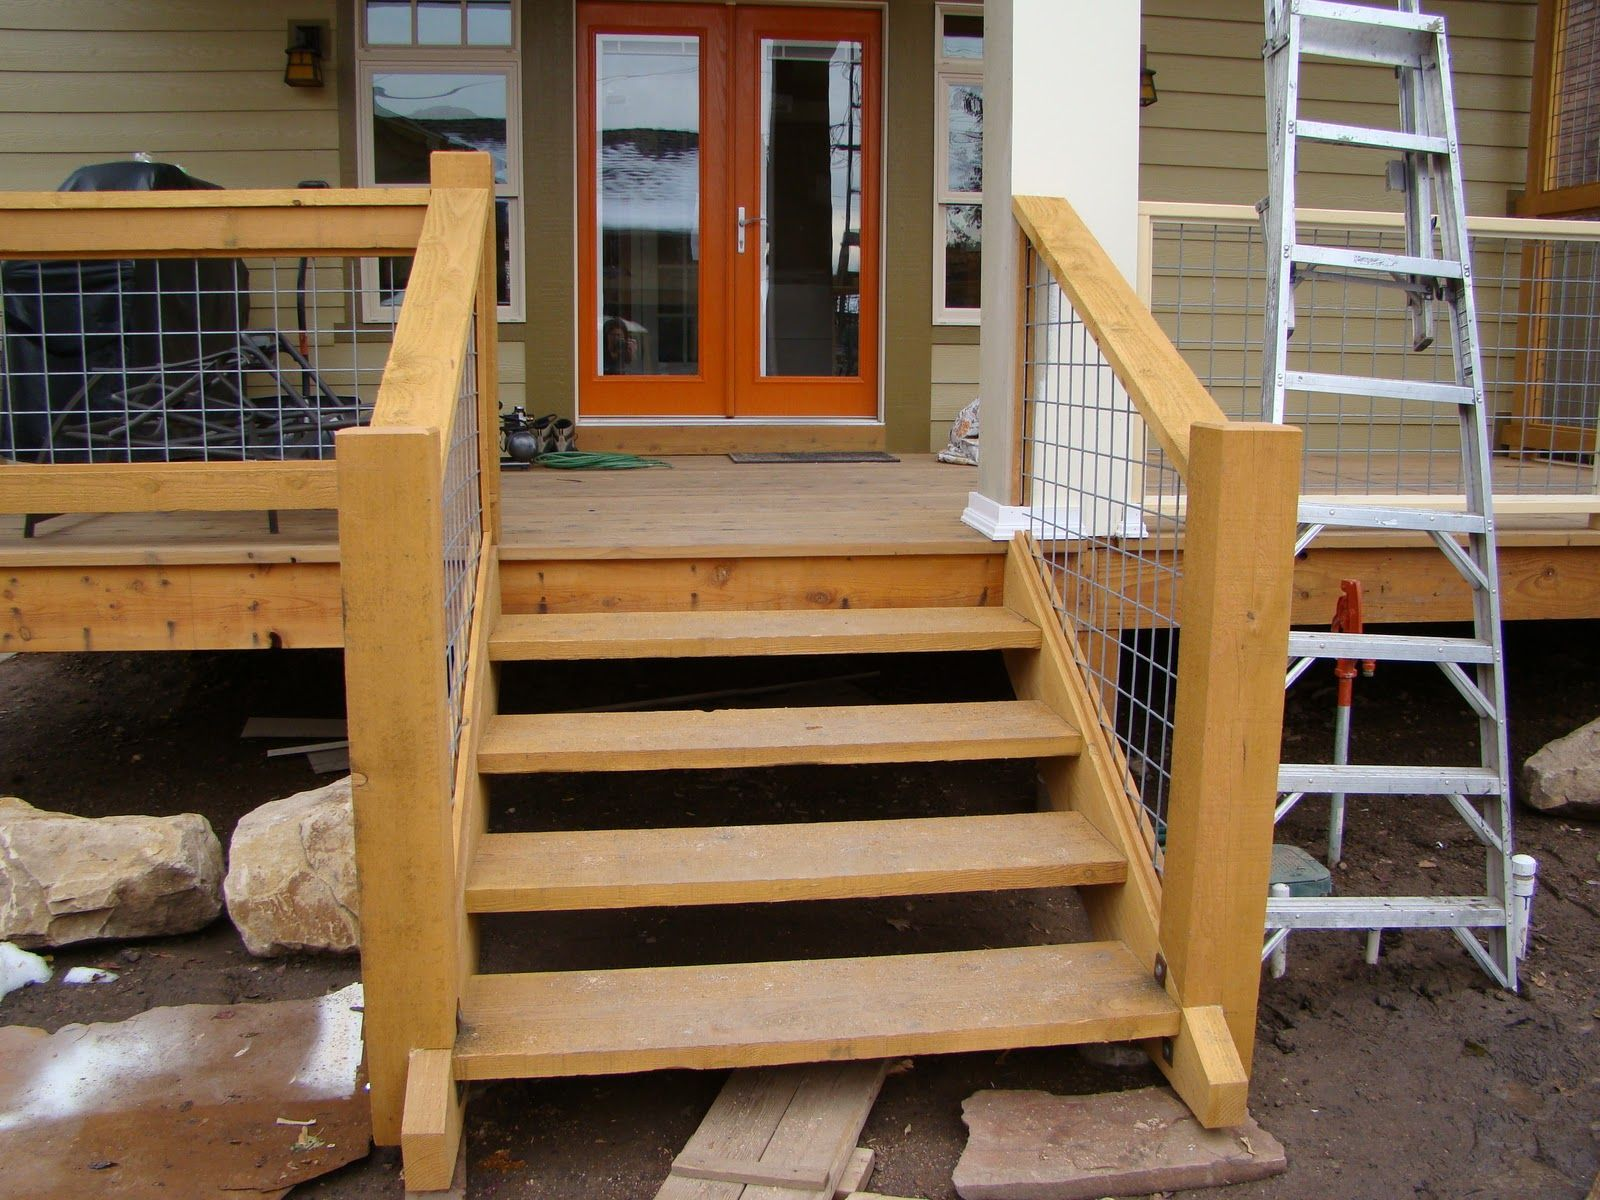 Hog Panel Stair Railing Google Search Outdoor Stair | Outdoor Deck Stair Railing